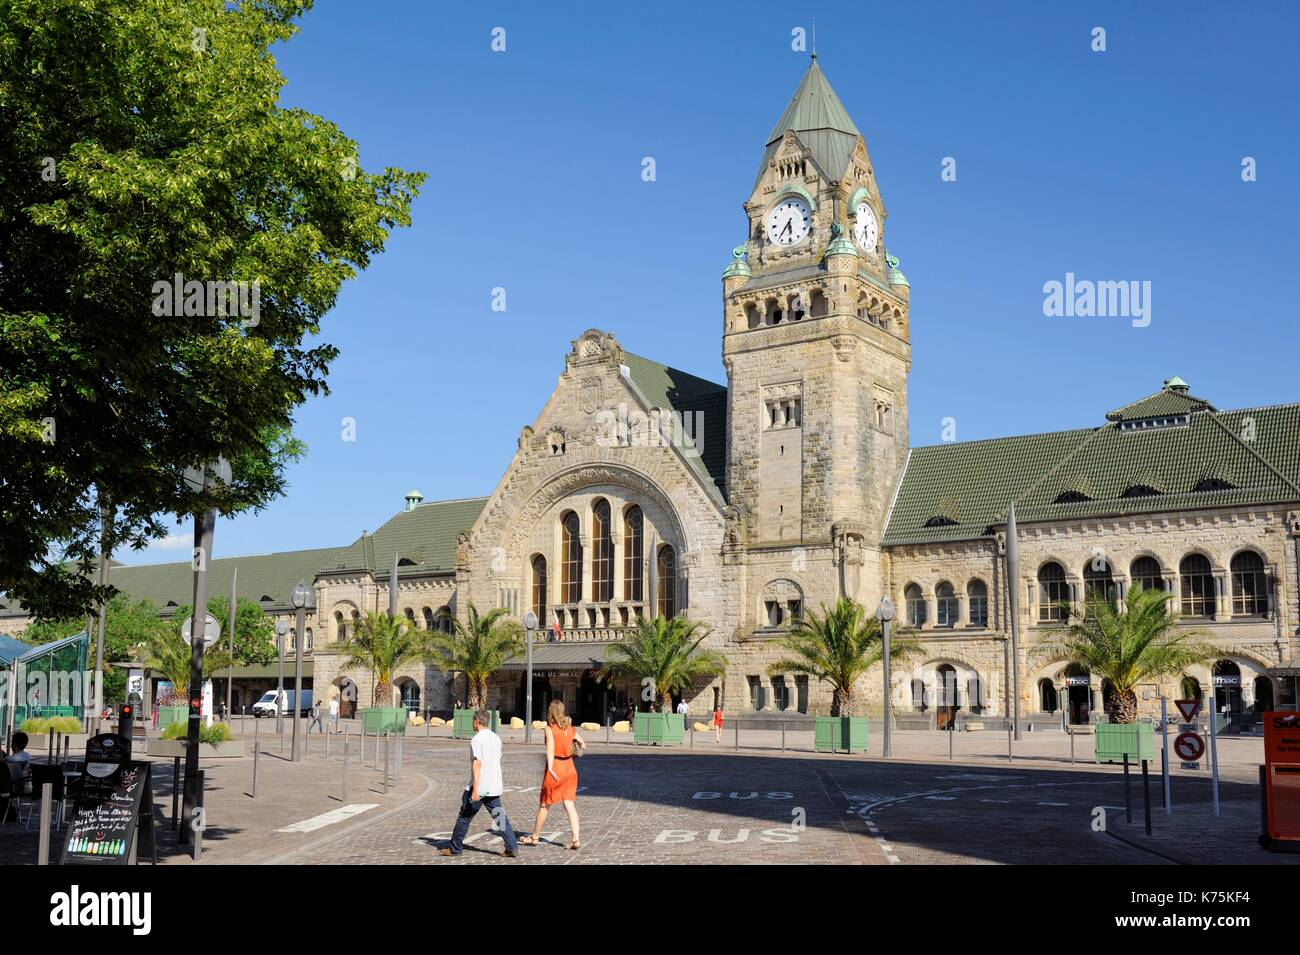 France, Moselle, Metz, railway Station of Metz-ville inaugurated in 1908 and elected in 2017 most beautiful railway station of France by Internet users following a competition organized on Facebook by Gares & Connexions - Stock Image